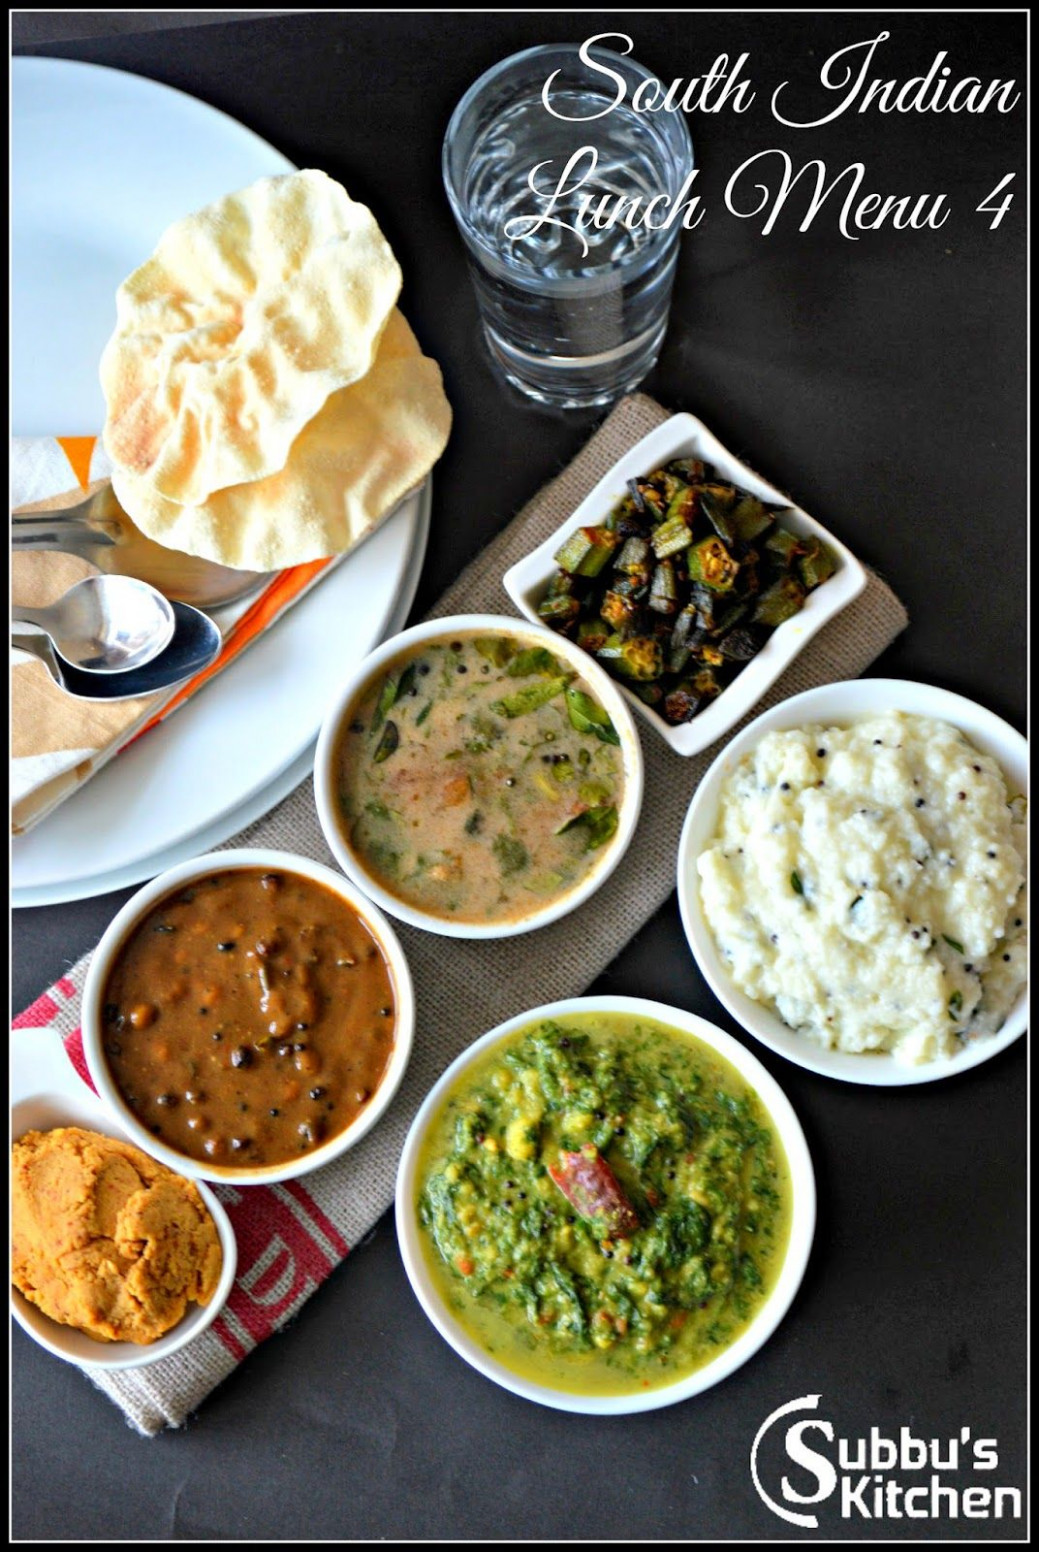 South Indian Lunch Menu 4 | Indian Thali a complete meal ..